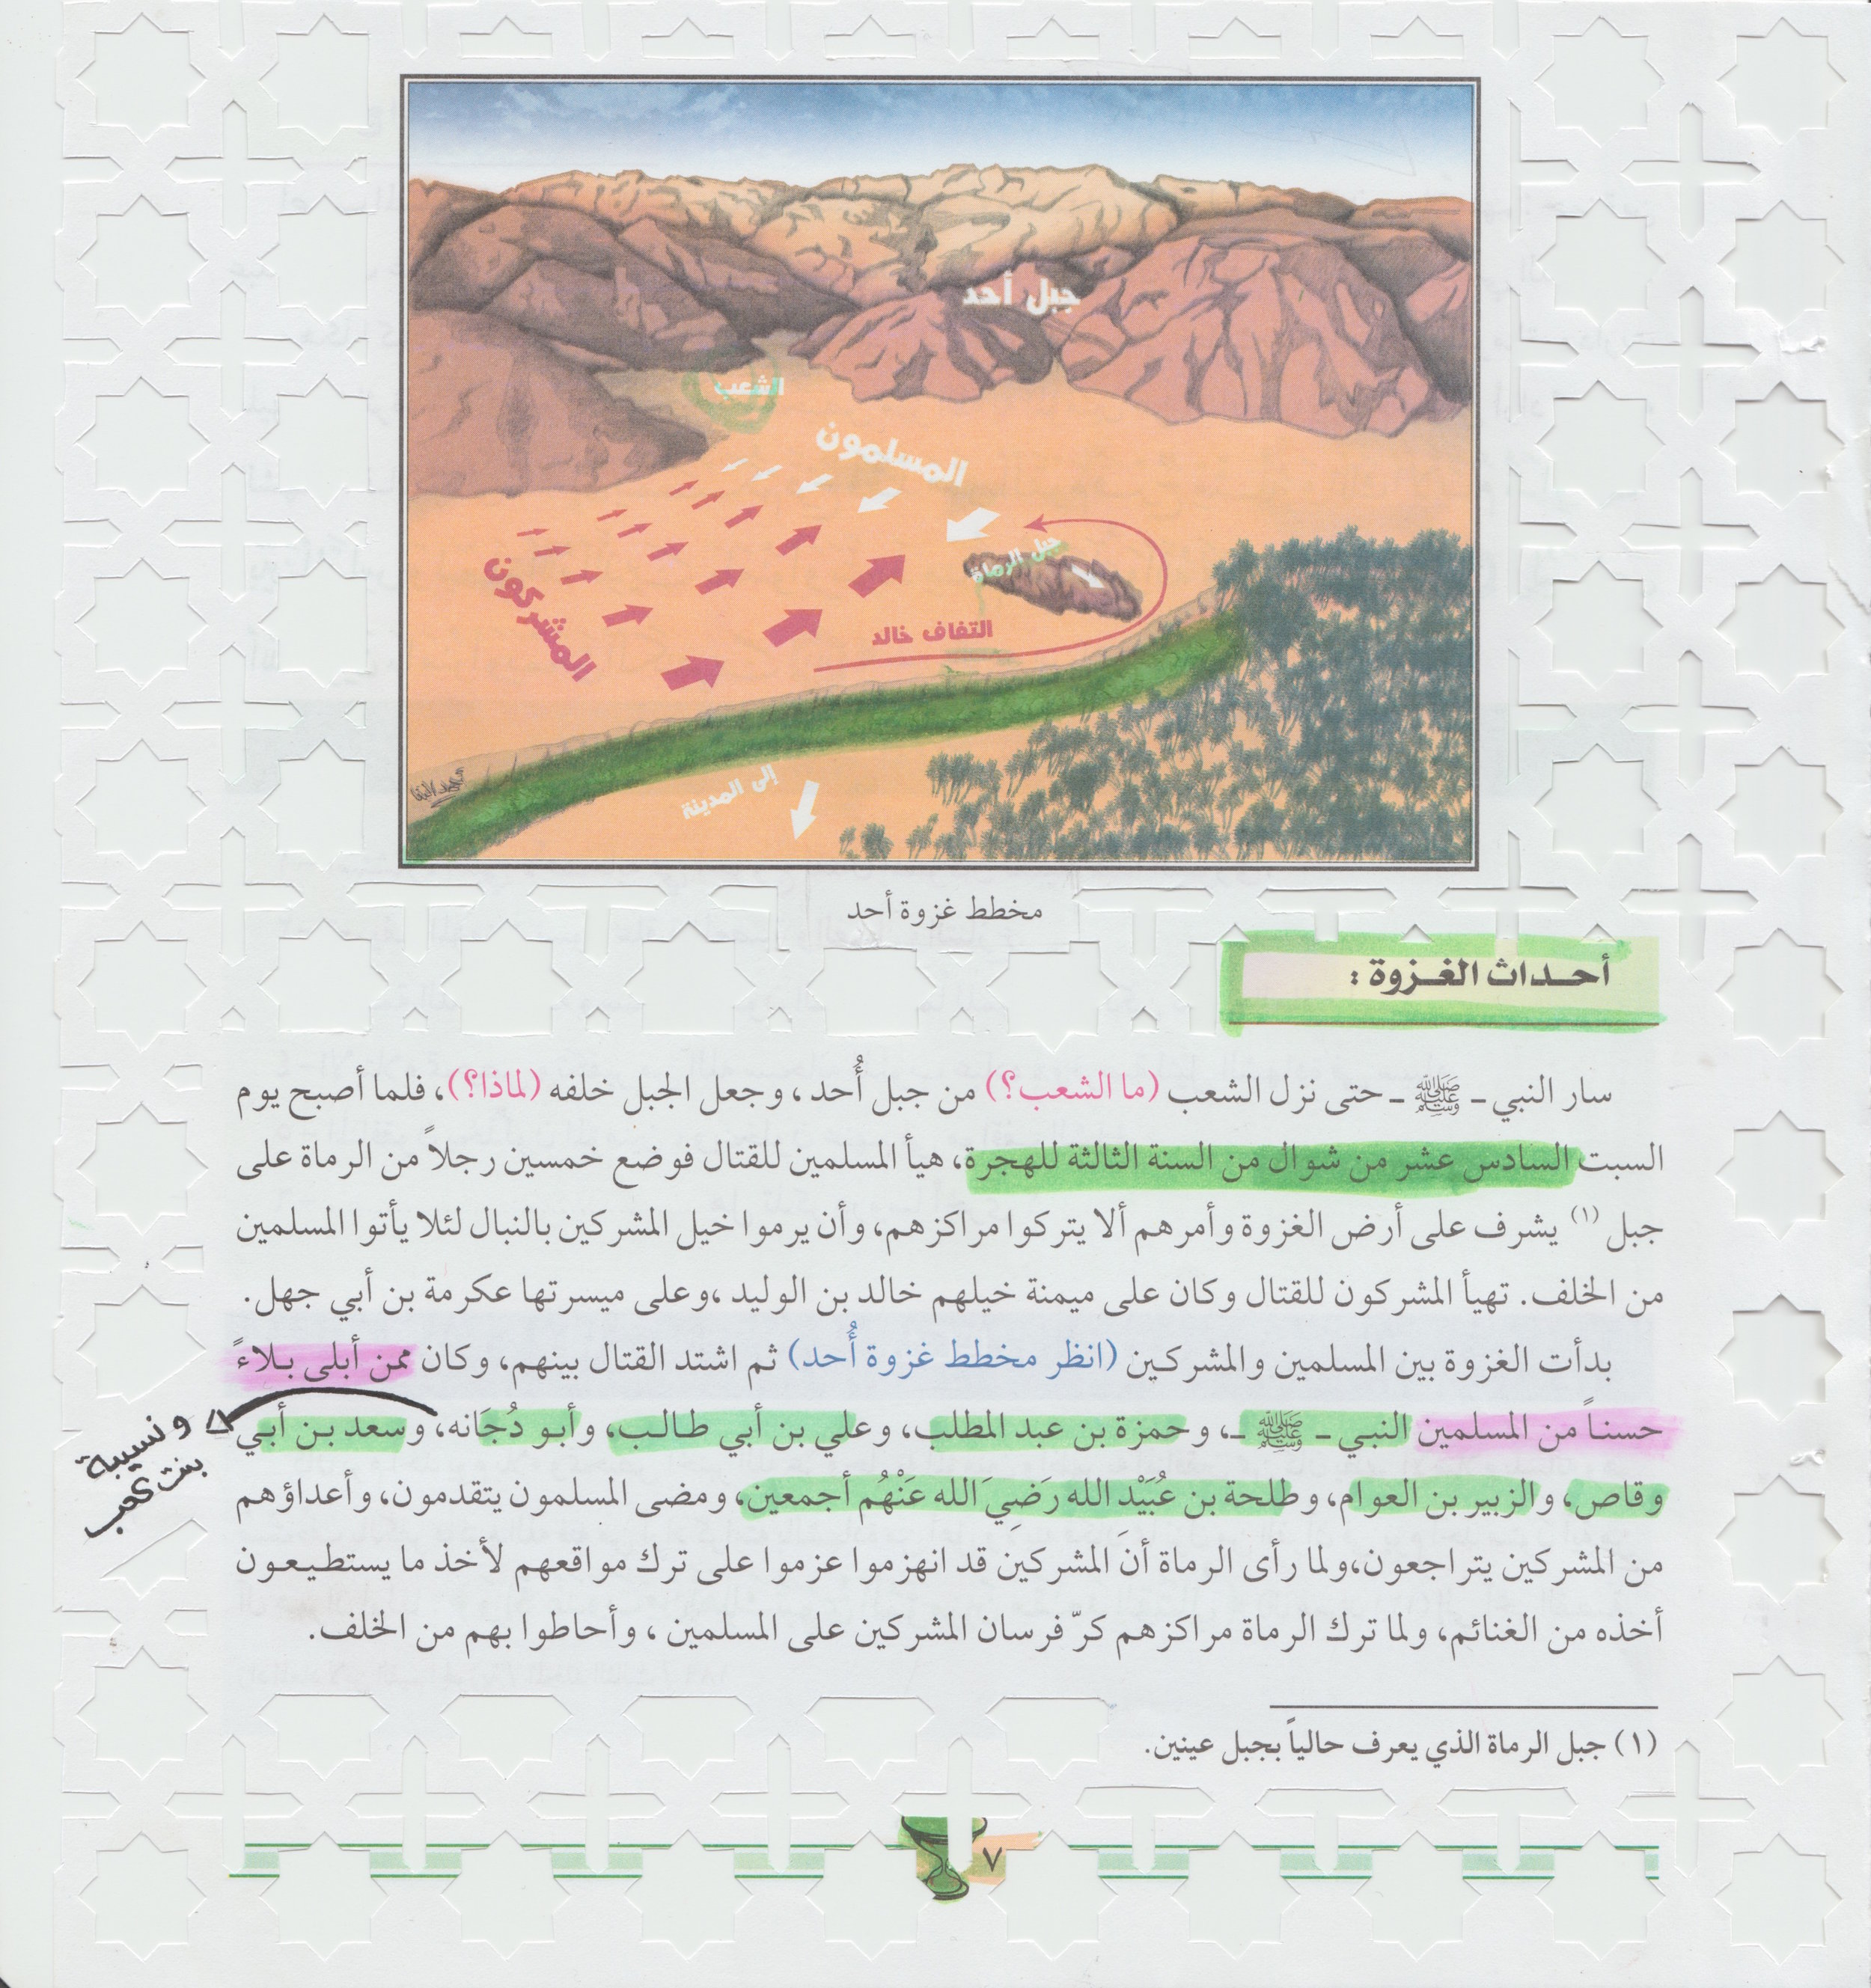 Nuseiba Bint Ka'ab & The Battle of Uhud, Altered page from school book, from S(HE) series.jpeg